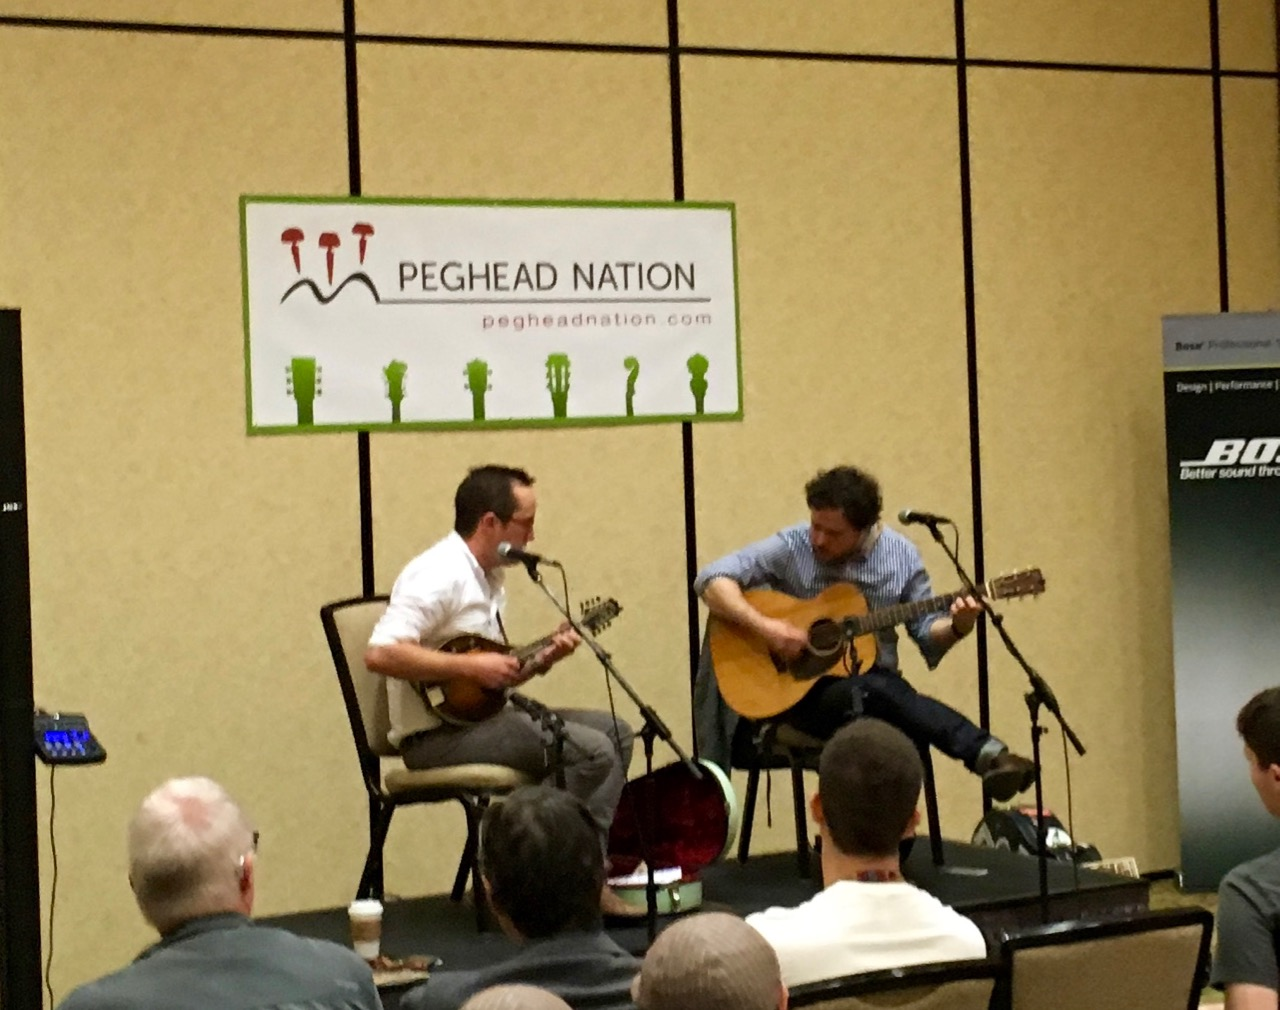 Joe K. Walsh and Grant Gordy demonstrating duets